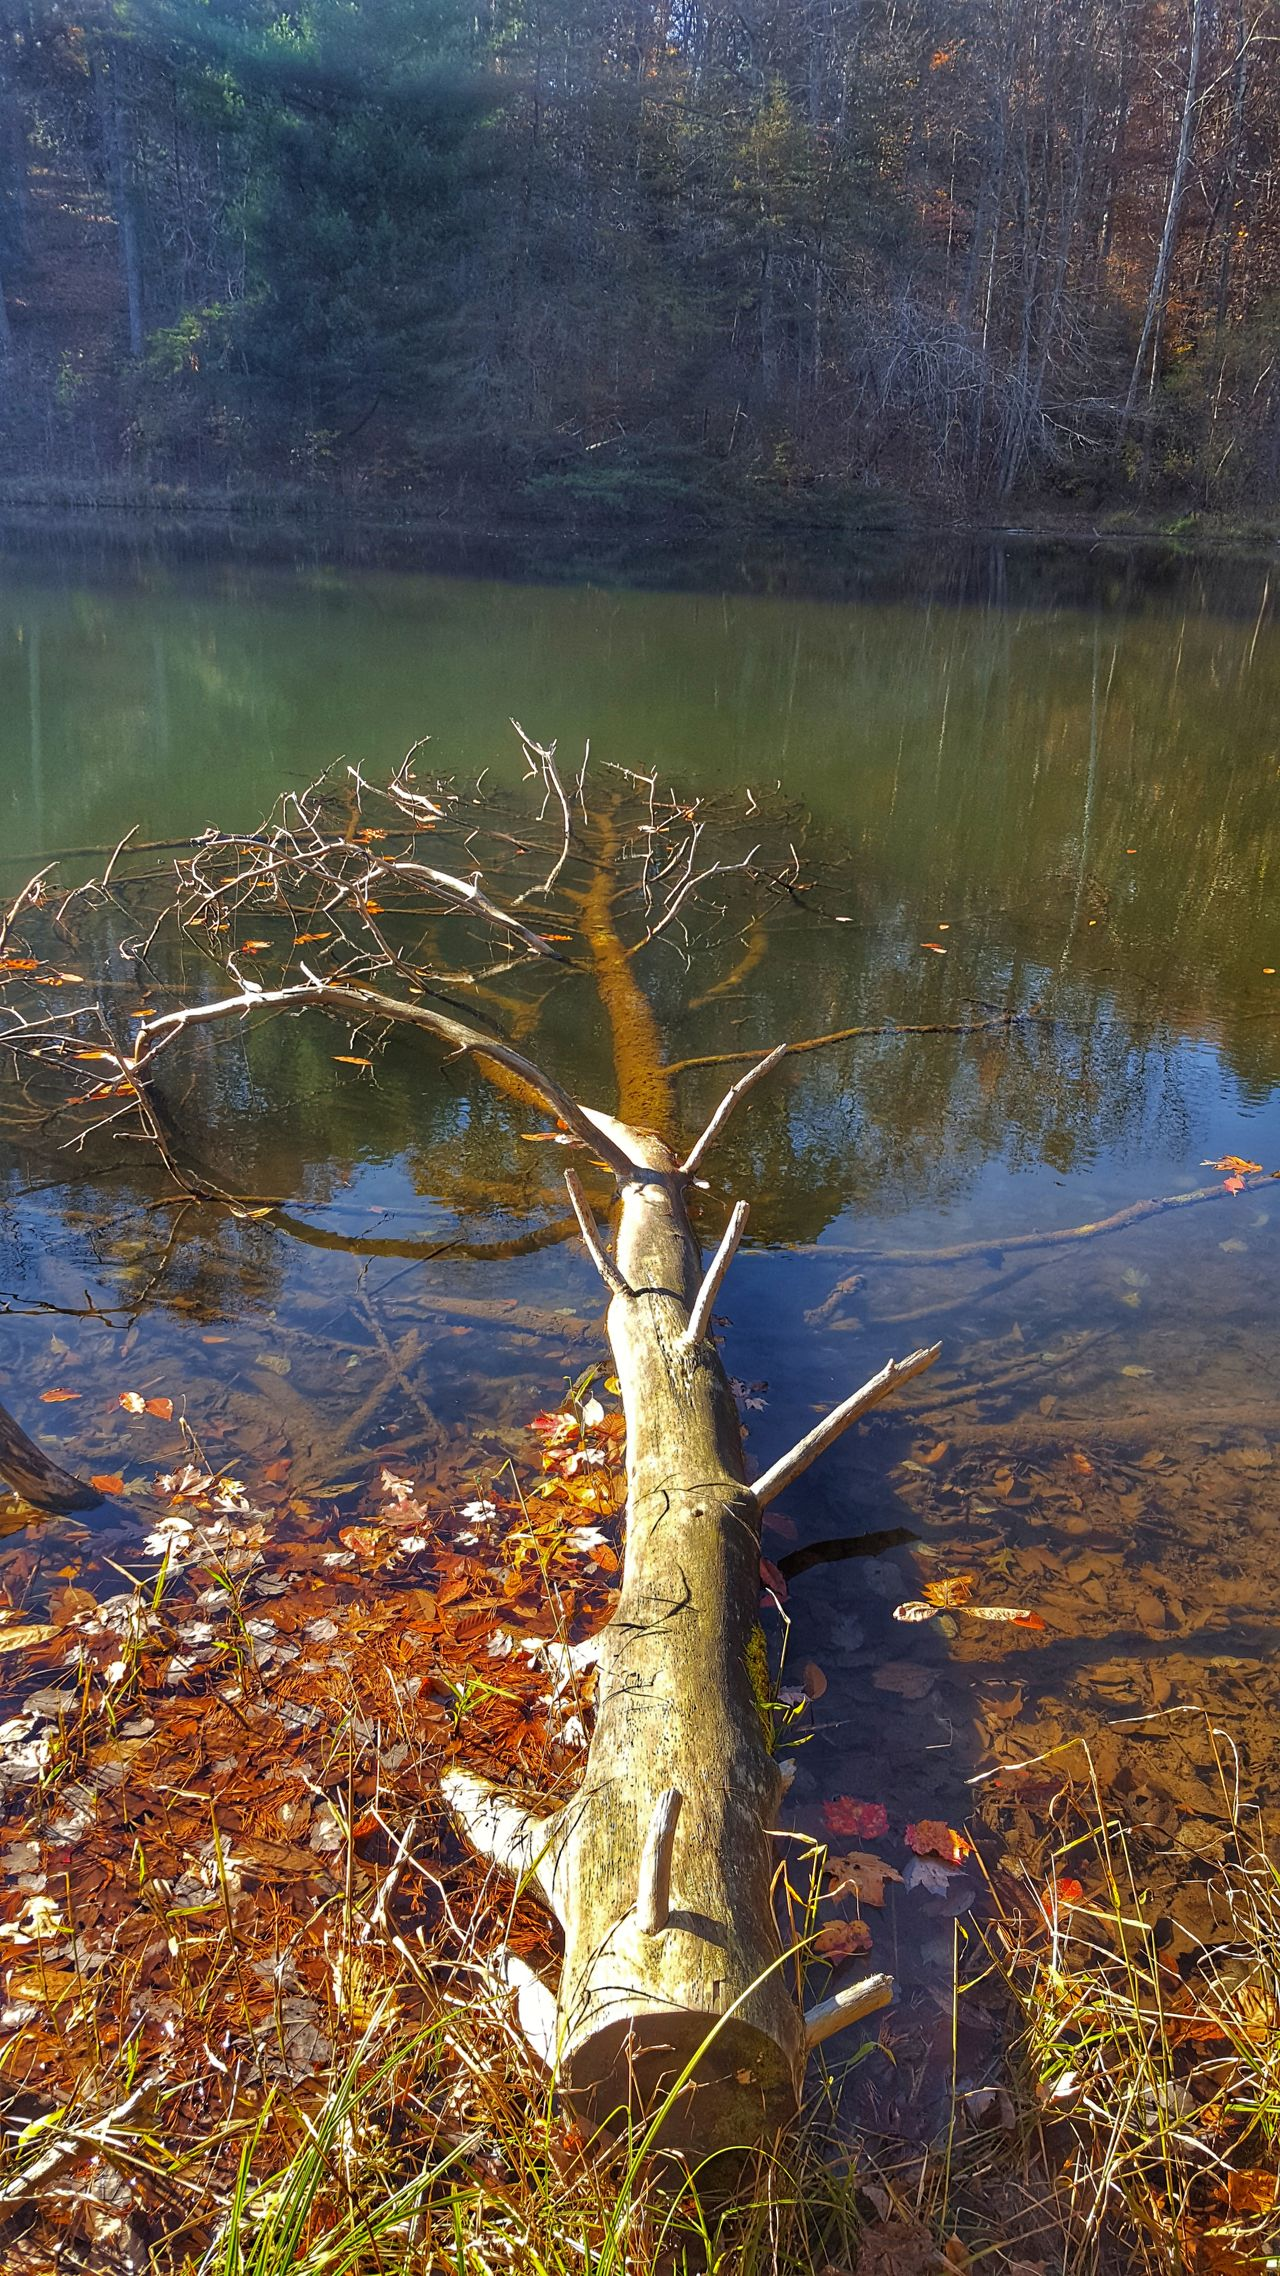 Fall Reflection Water Beauty In Nature No People Reflection Submerged Submerged Trees Winteriscoming Tranquility Nature Tree Beauty In Nature Prewinterclassic Winter Is Coming Winter 2016 Fallen Tree Fall Season Death And Life Lakelife Hocking Hills State Park Outdoors Nature Scenics